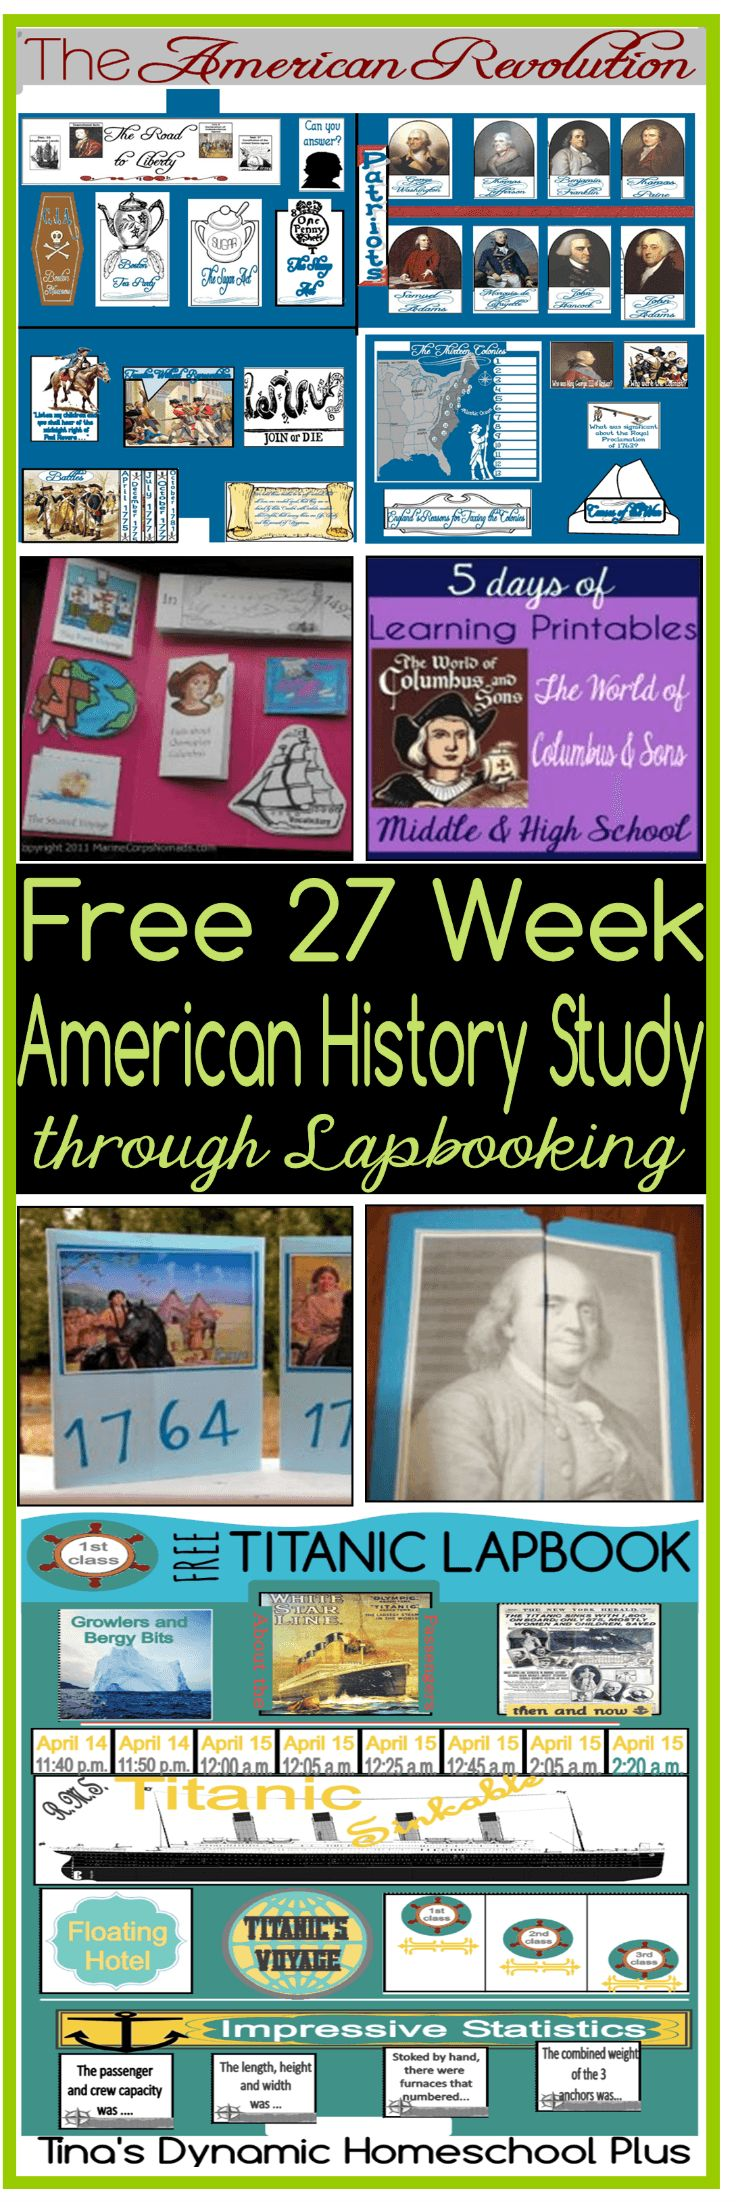 62 best HS: History - Early American images on Pinterest | Early ...